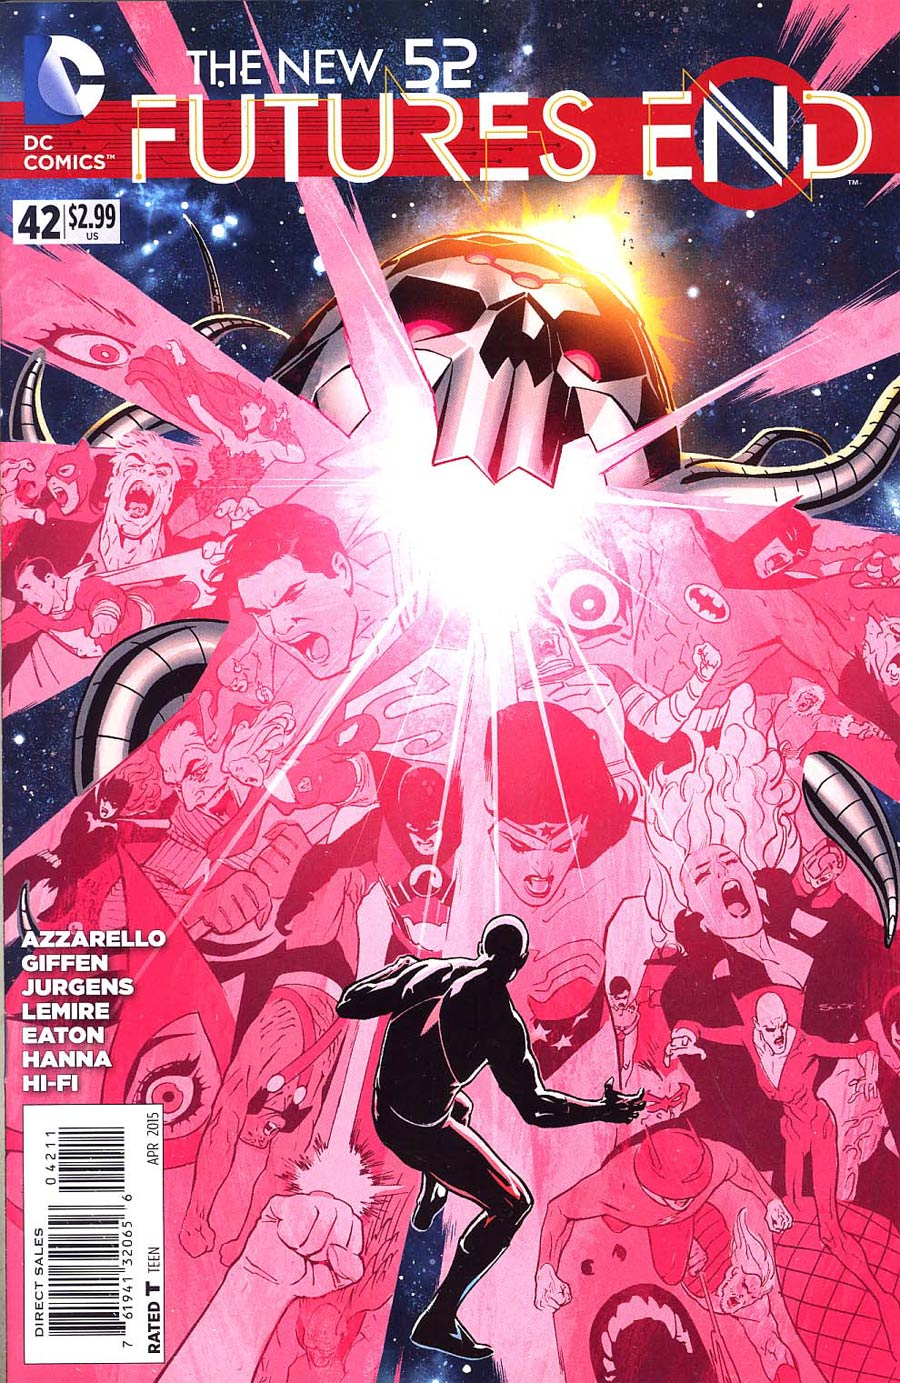 New 52 Futures End #42